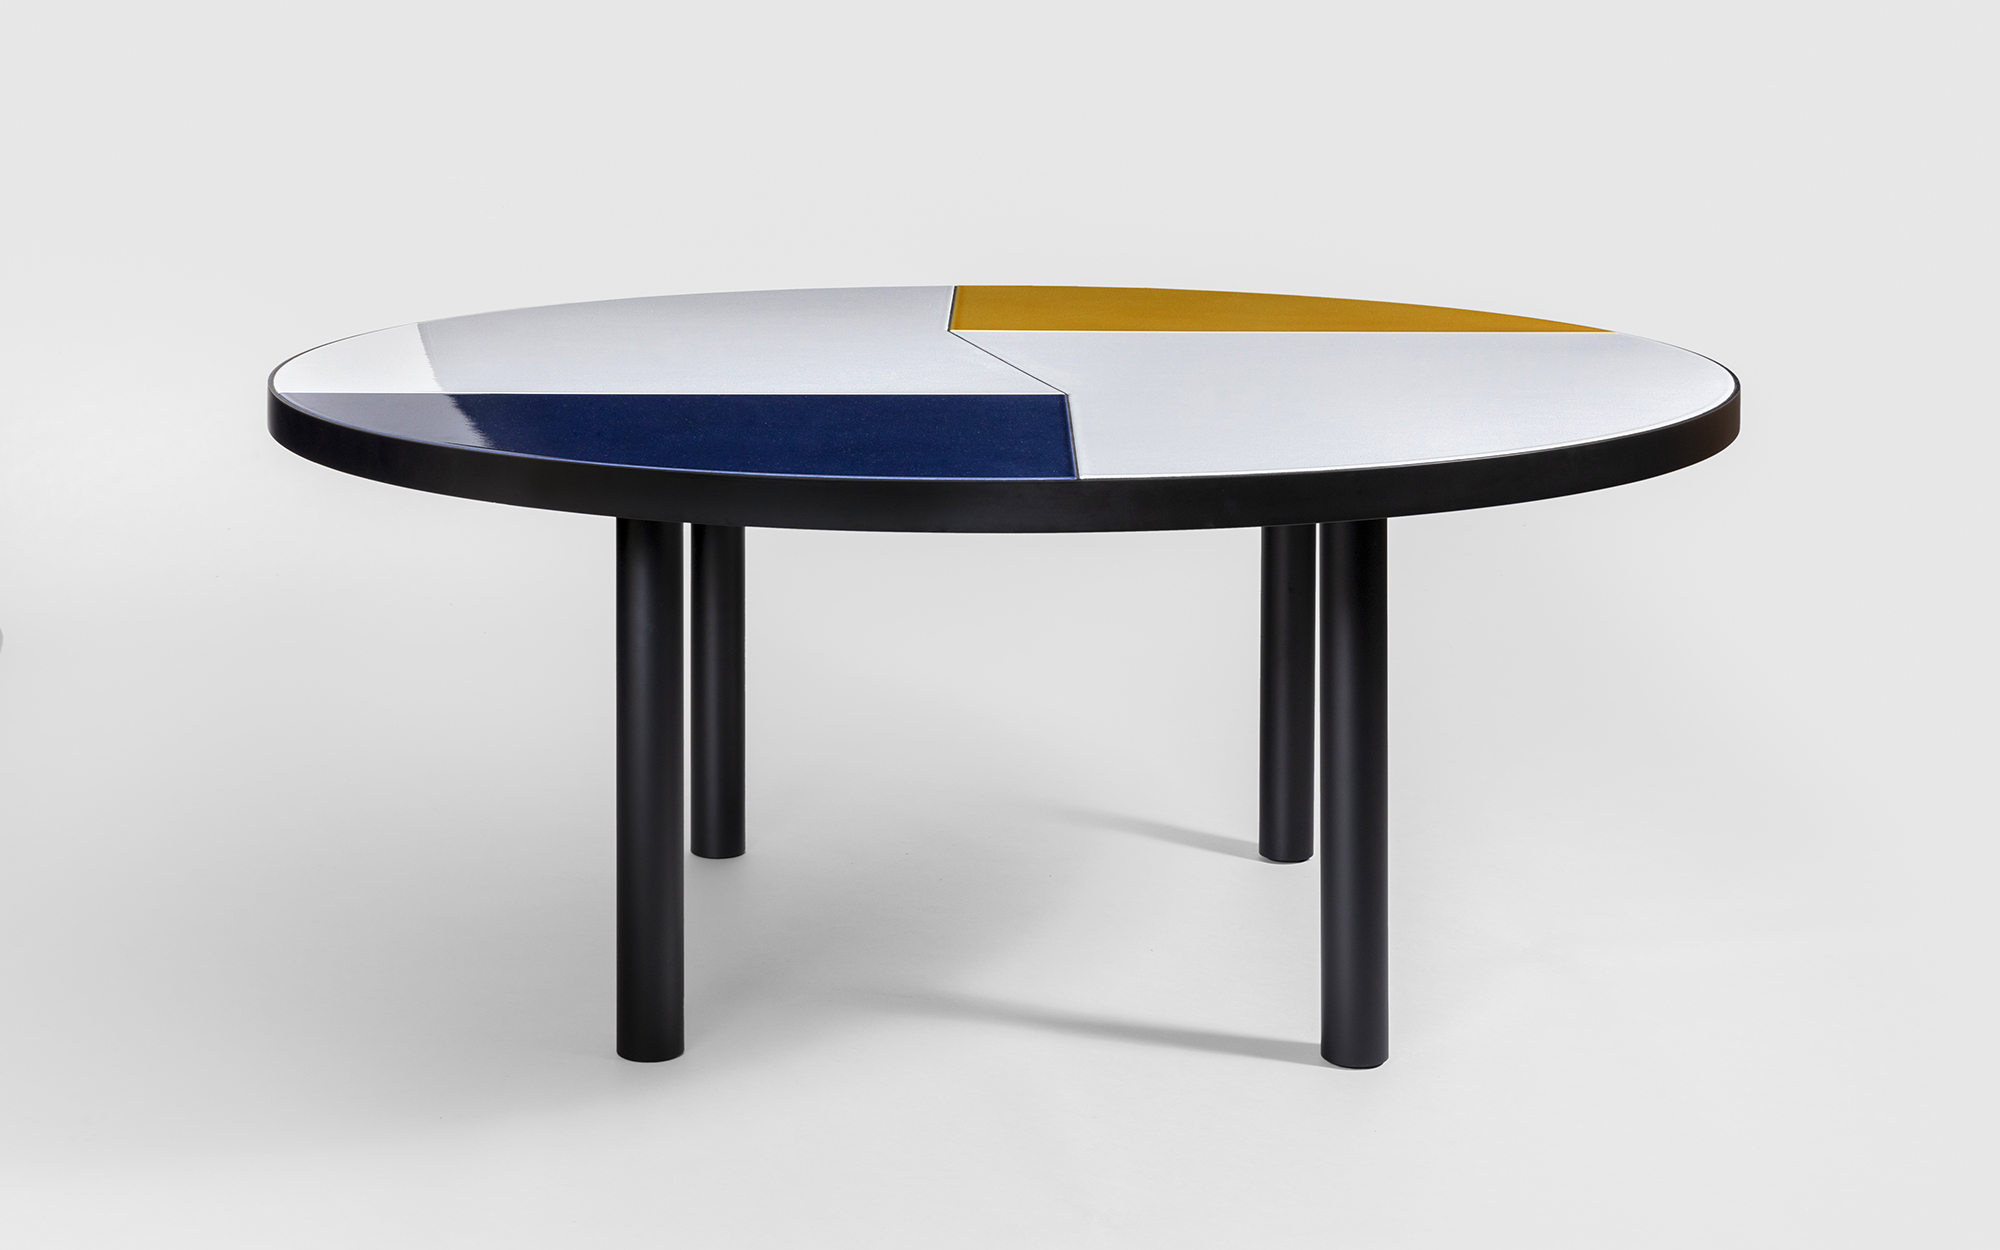 Pierre Charpin Fraction Dining Table